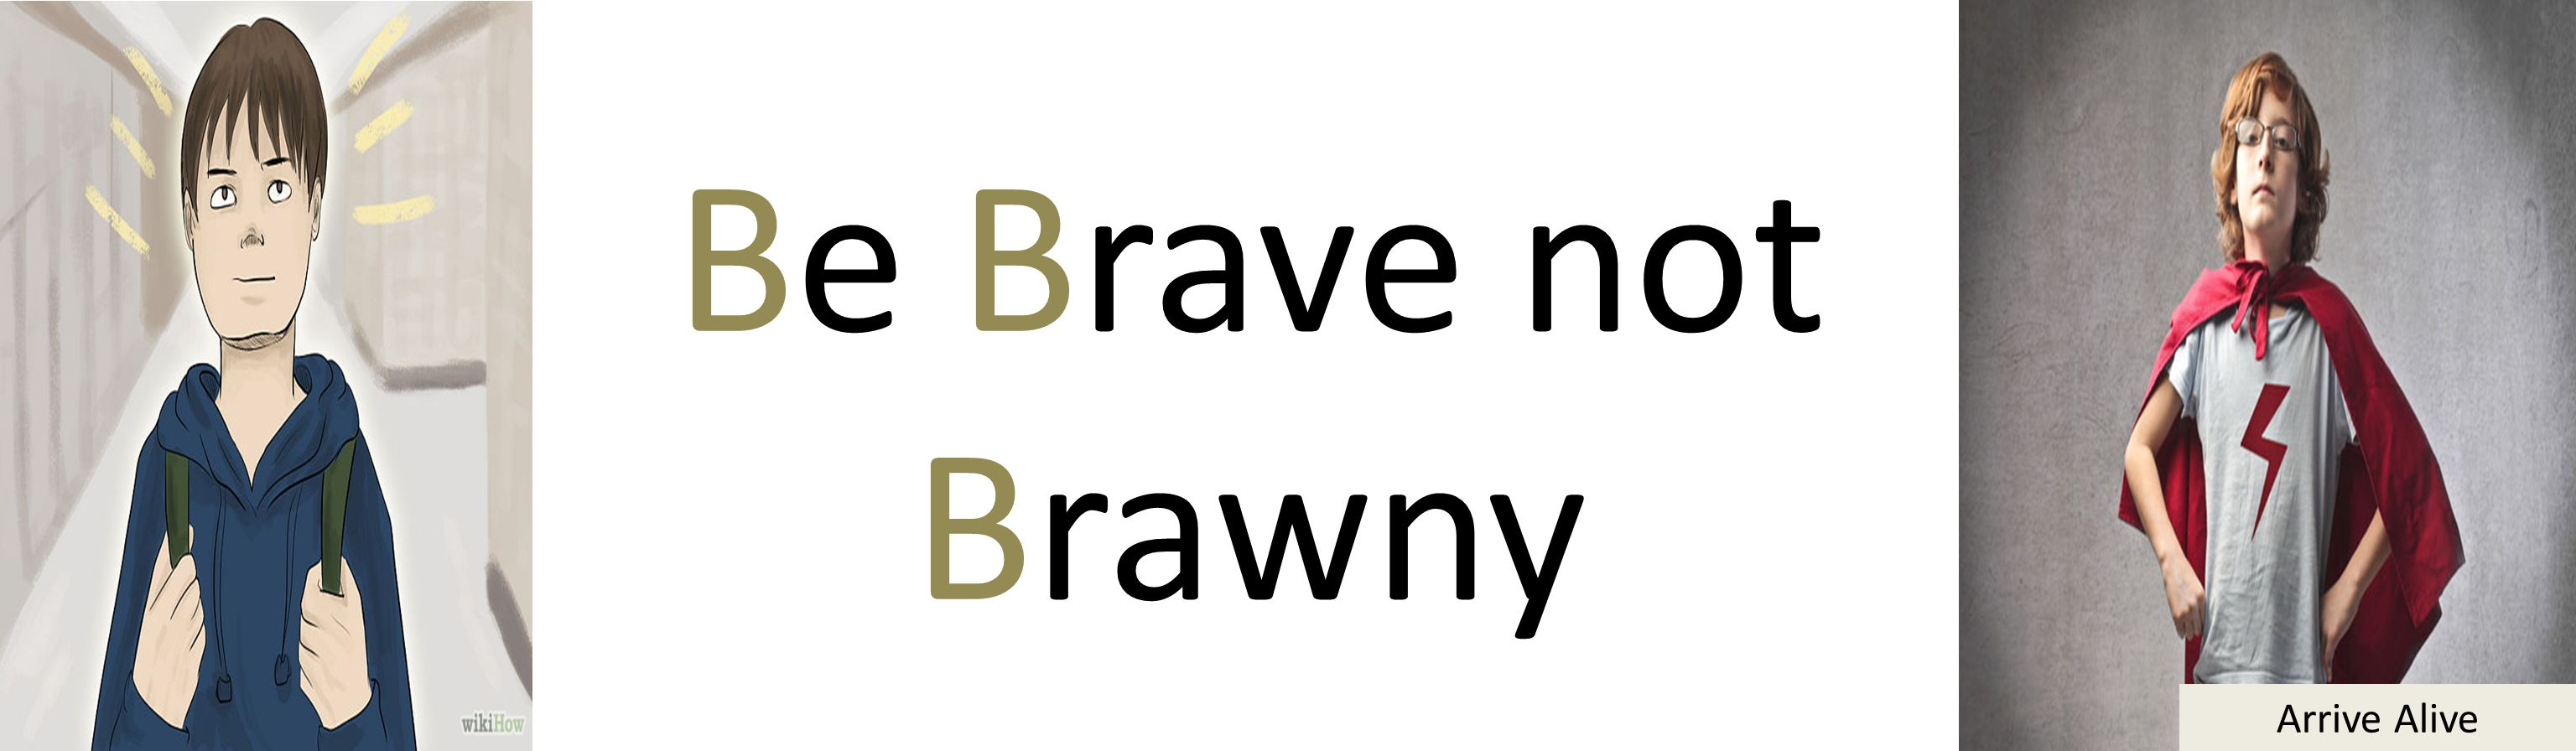 Arrive Alive Be Brave not Brawny